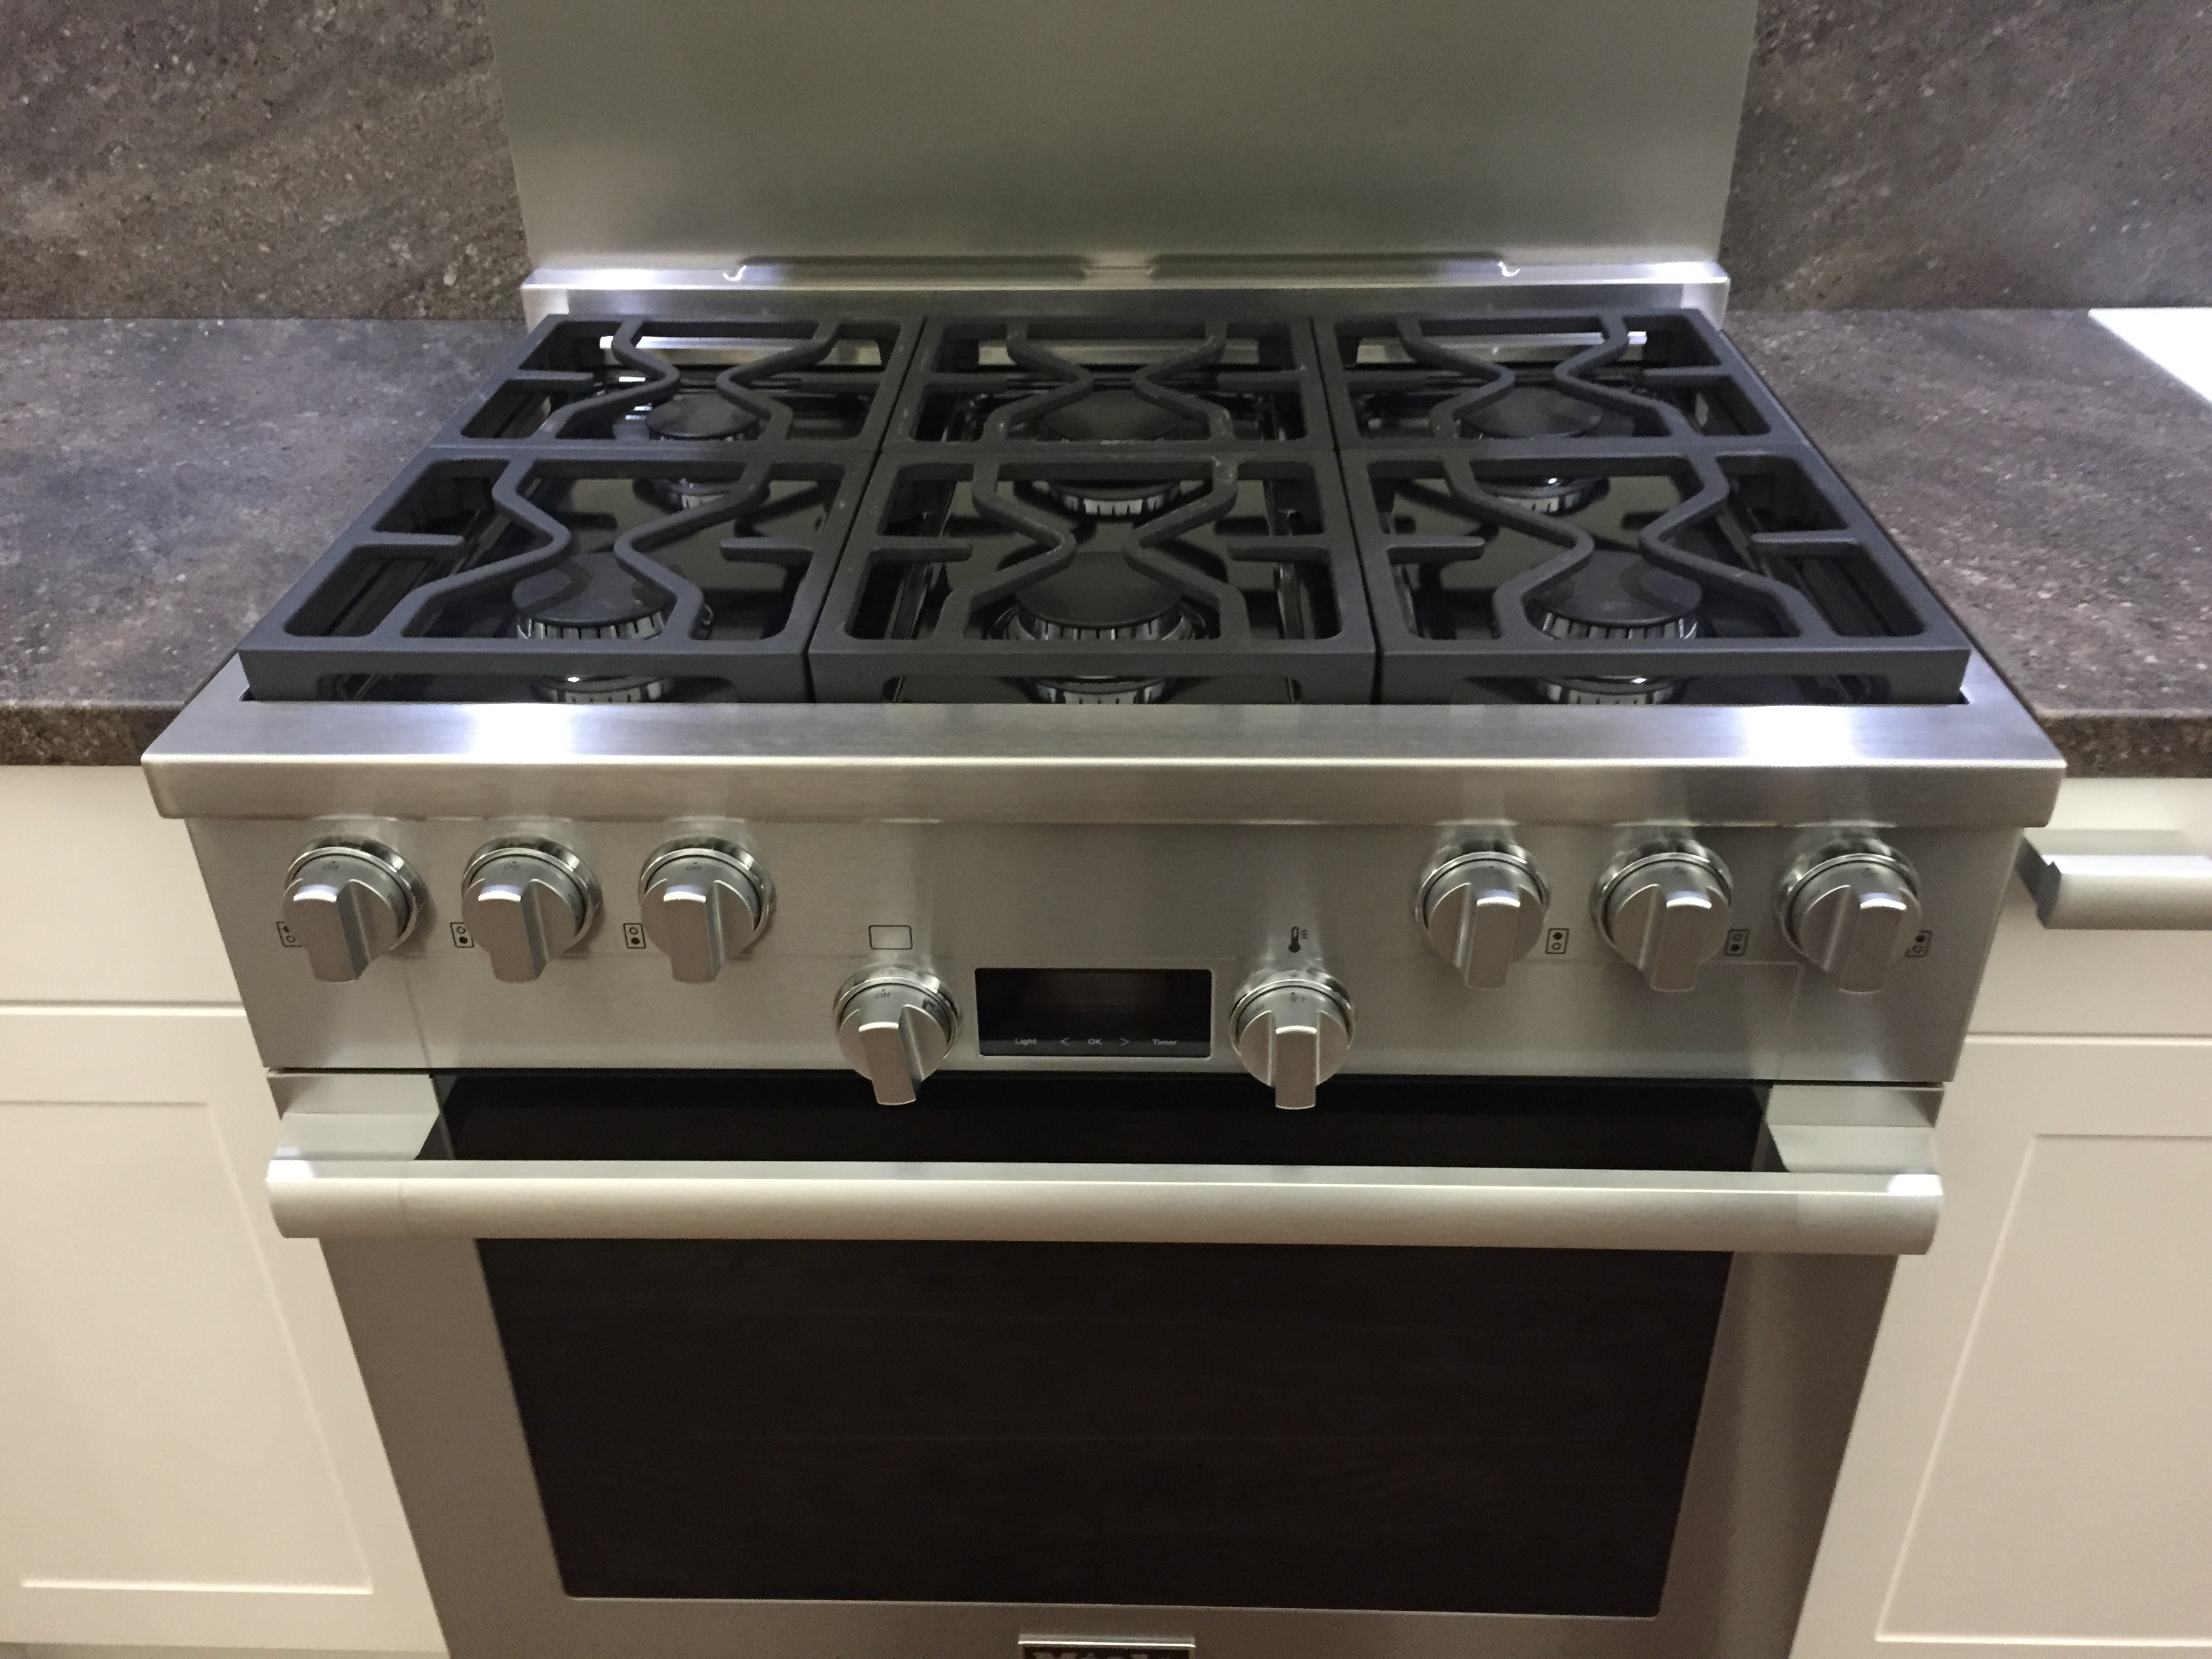 Miele Ranges Blog Lansdale Kitchen Appliances Keiffer